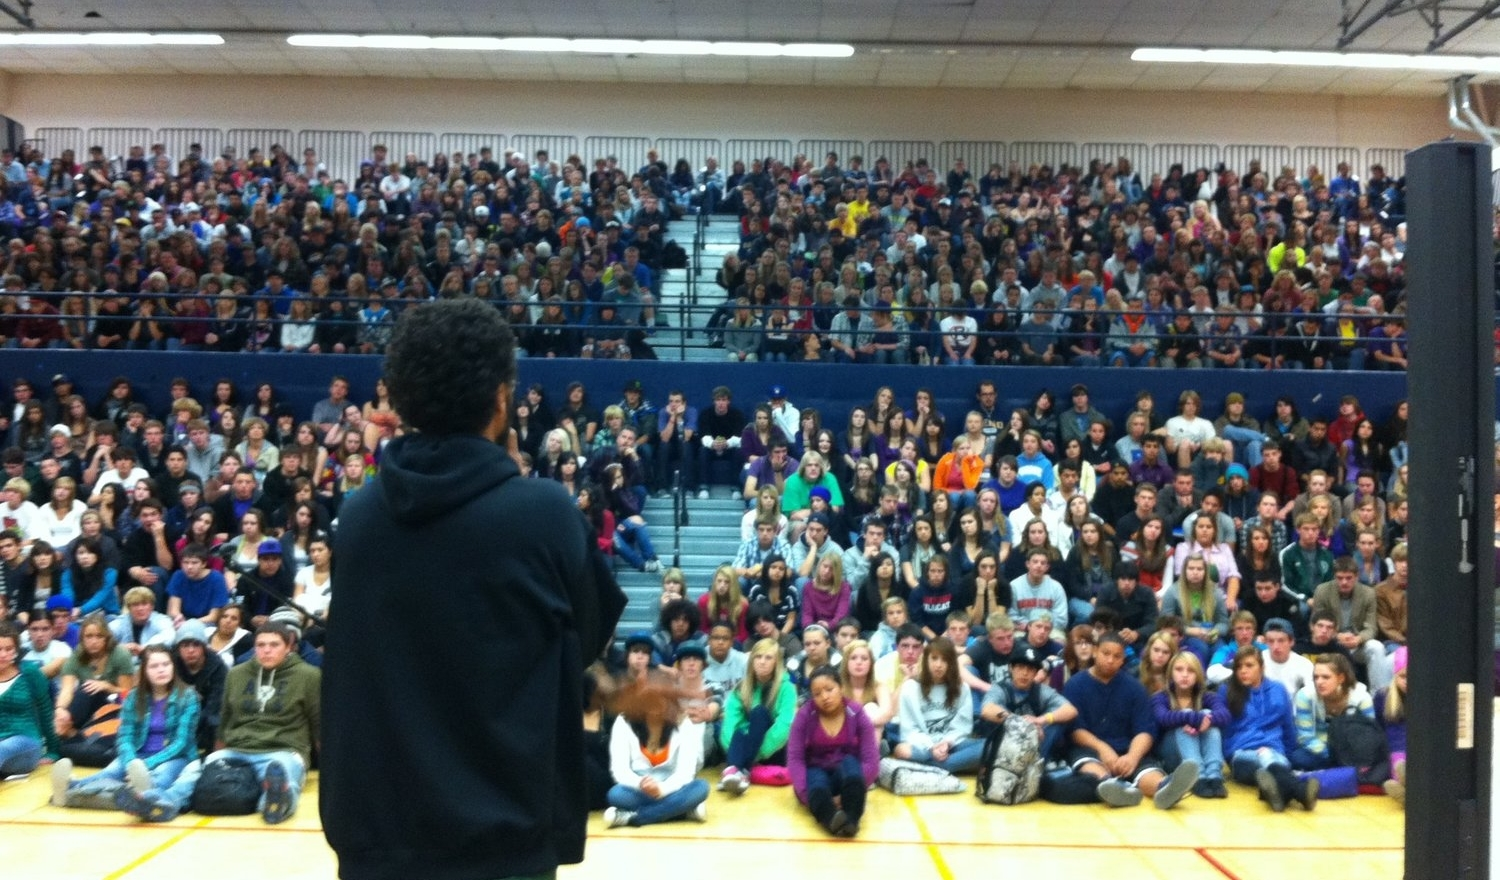 Mowo performing at Bend senior high school